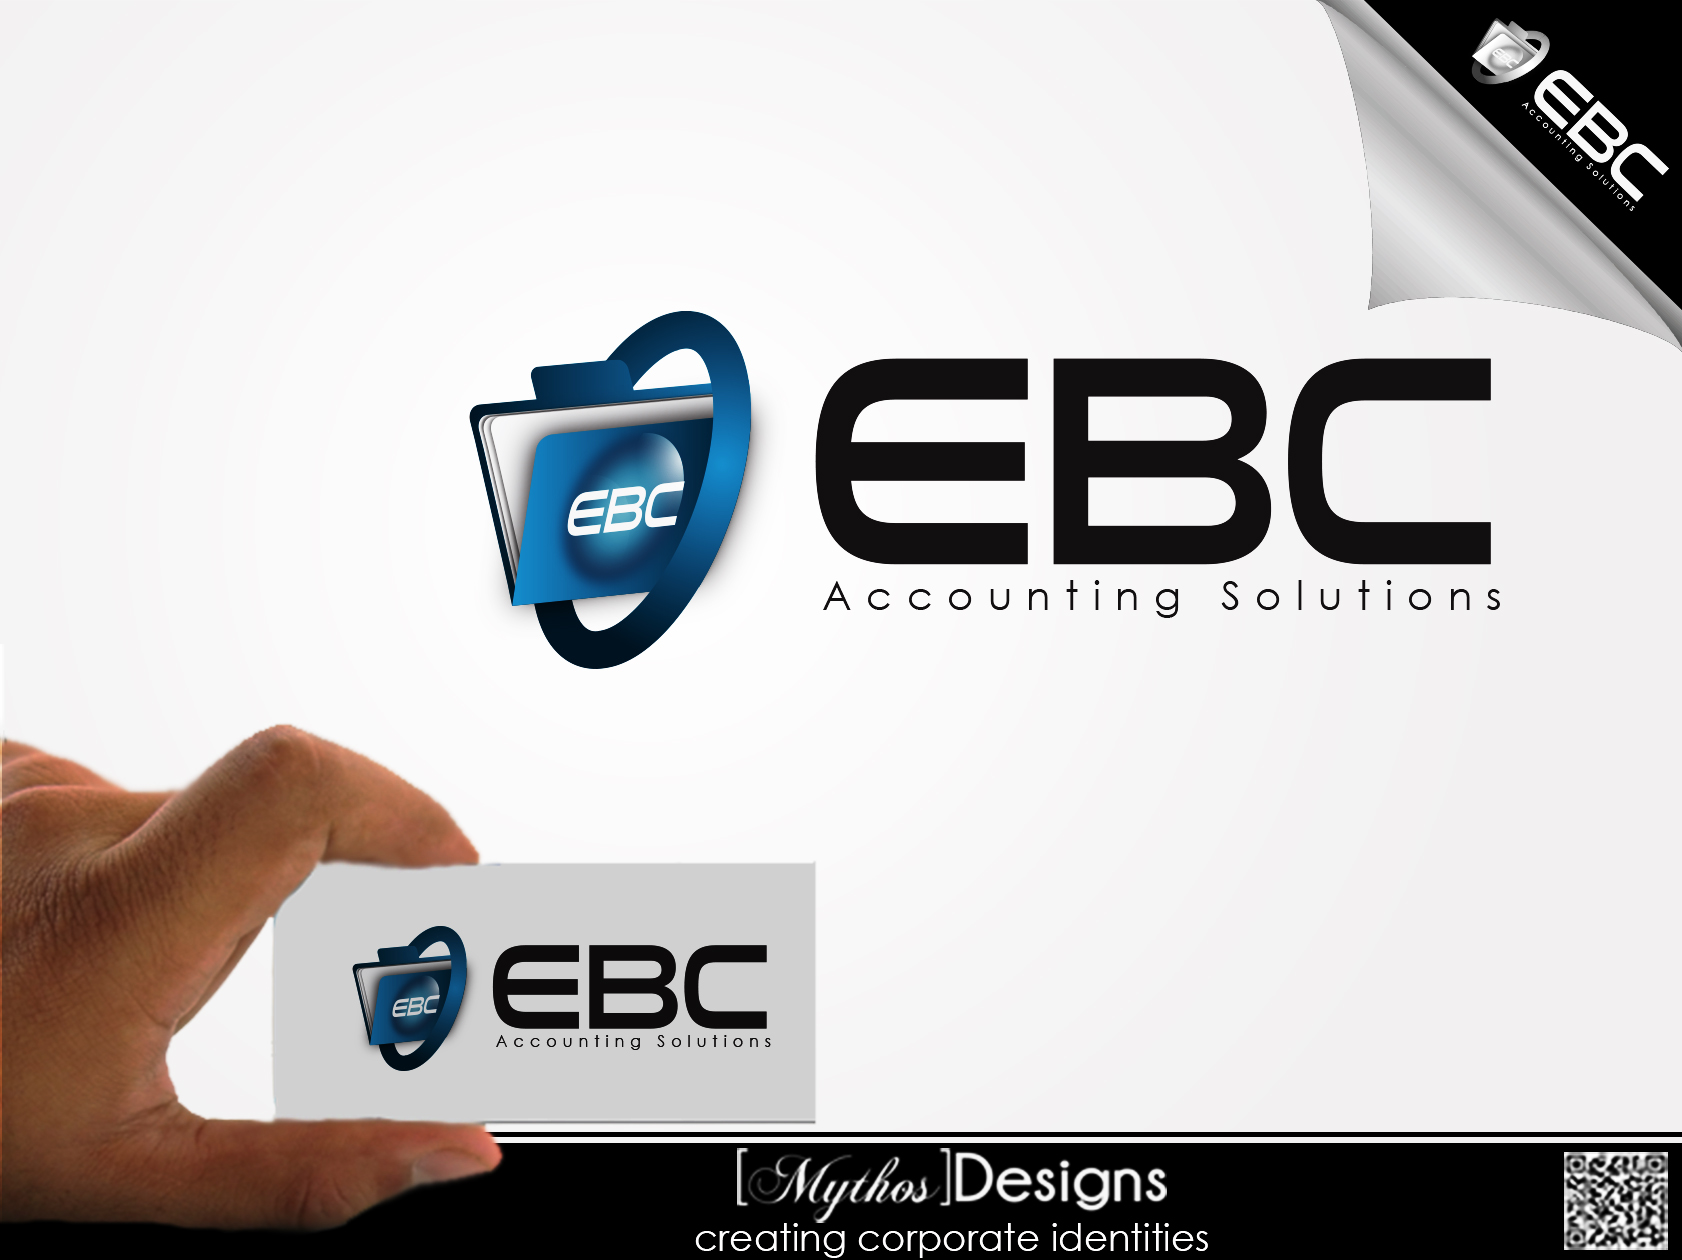 Logo Design by Mythos Designs - Entry No. 95 in the Logo Design Contest New Logo Design for EBC Accounting Solutions.